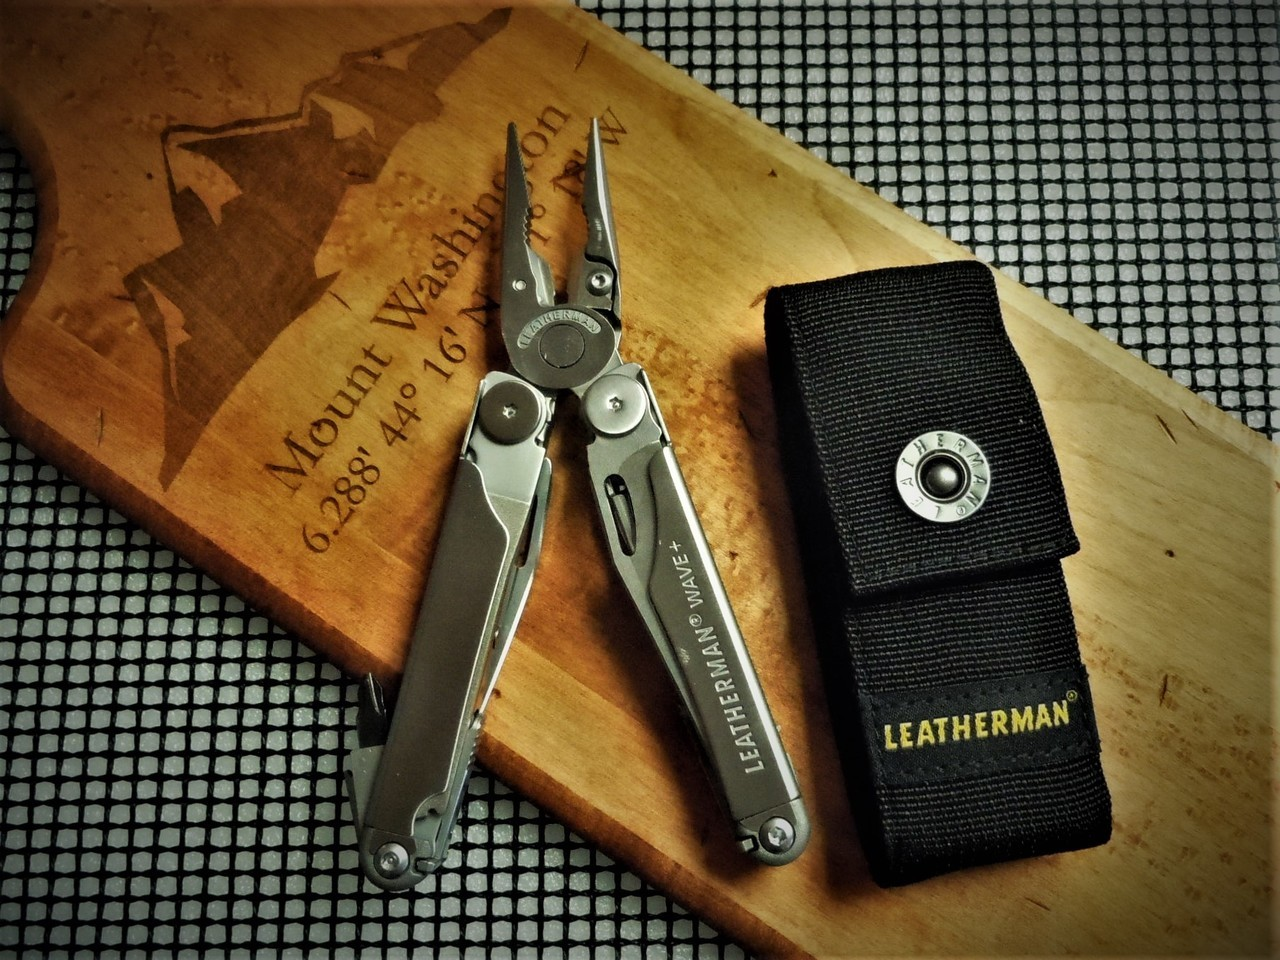 Gear Haul: Leatherman Wave+ Multi-Tool